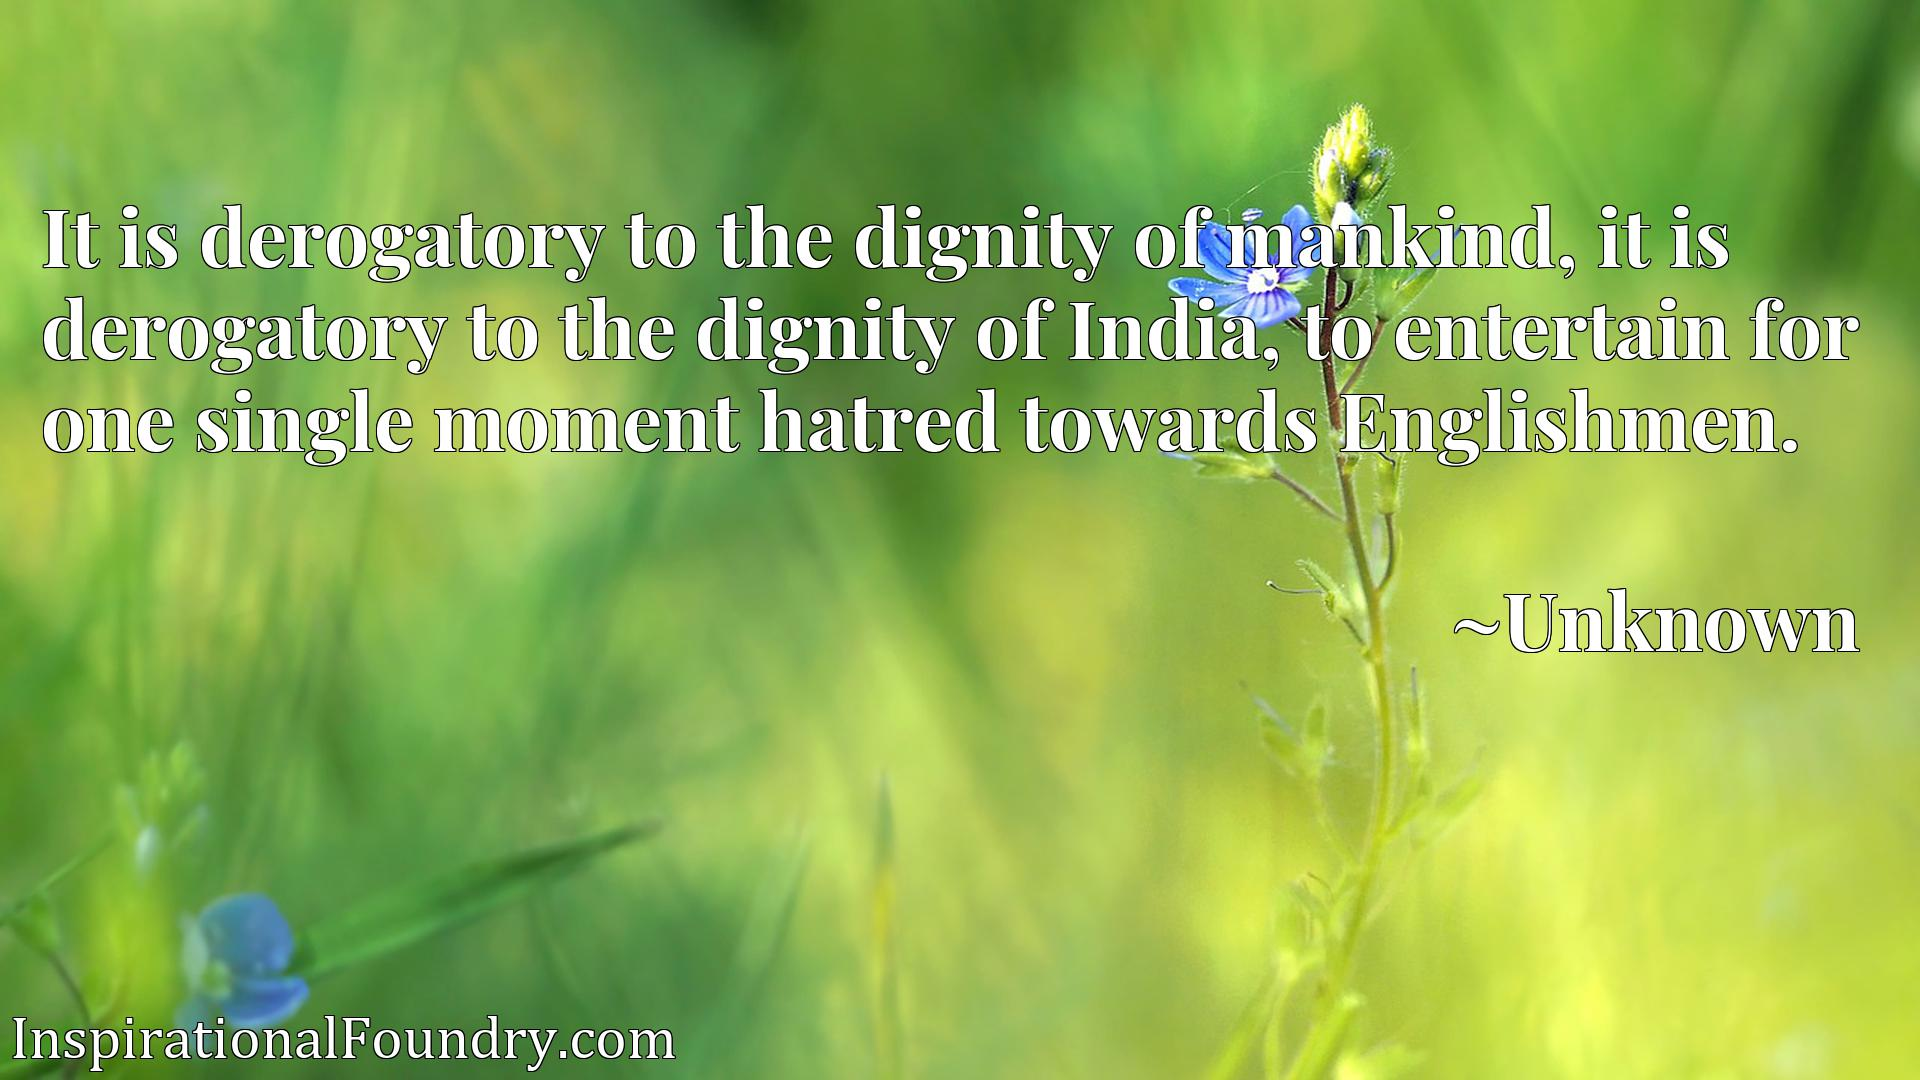 Quote Picture :It is derogatory to the dignity of mankind, it is derogatory to the dignity of India, to entertain for one single moment hatred towards Englishmen.